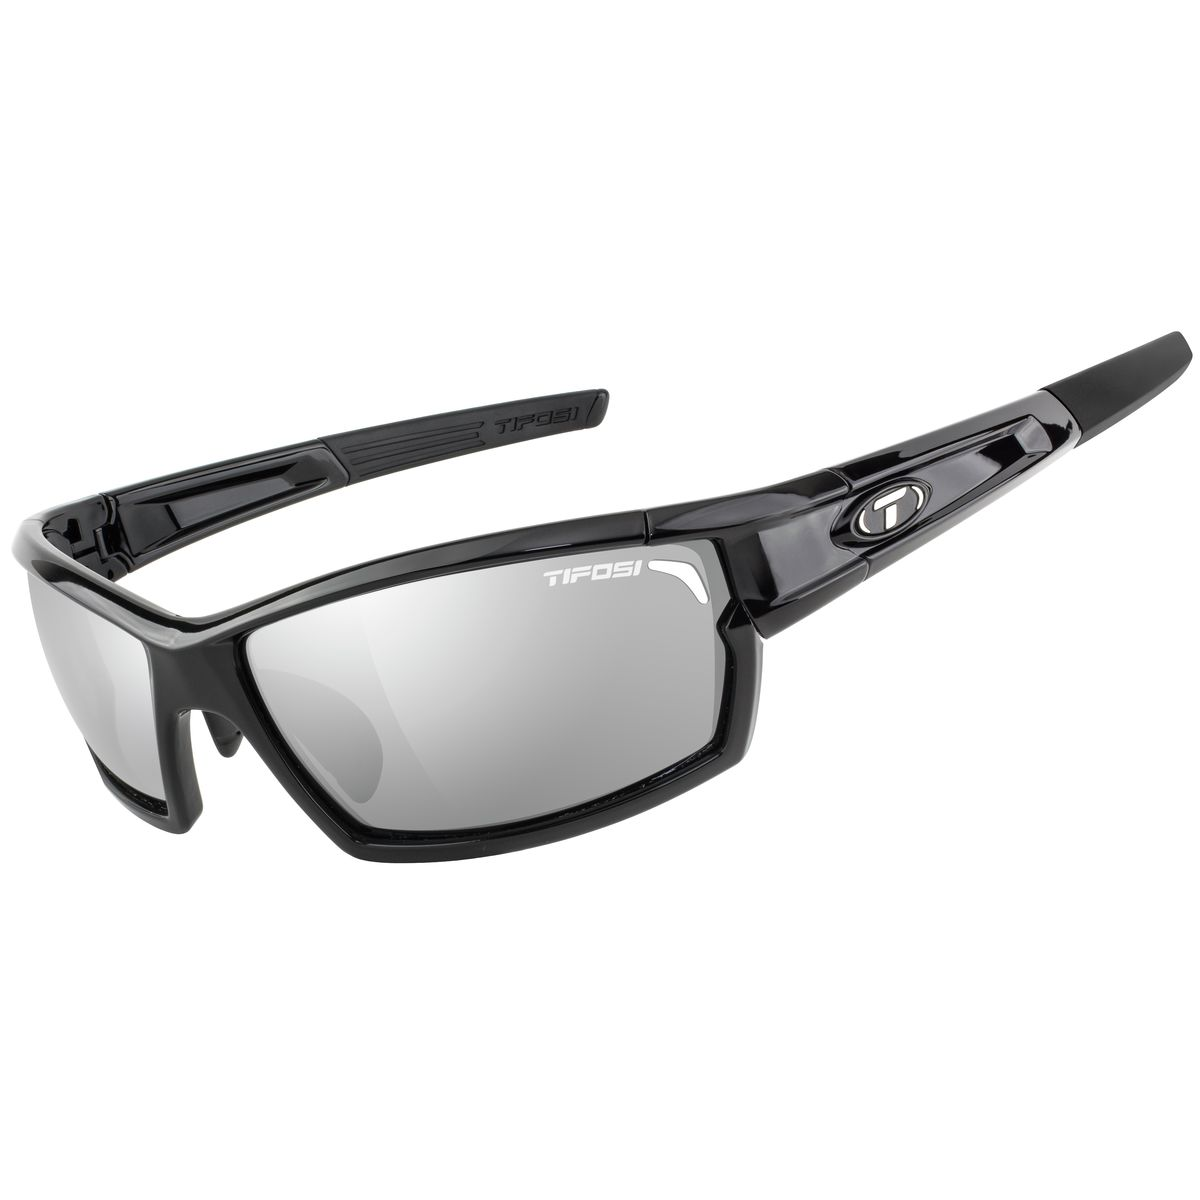 Tifosi Optics Escalate F.H. Sunglasses Men's